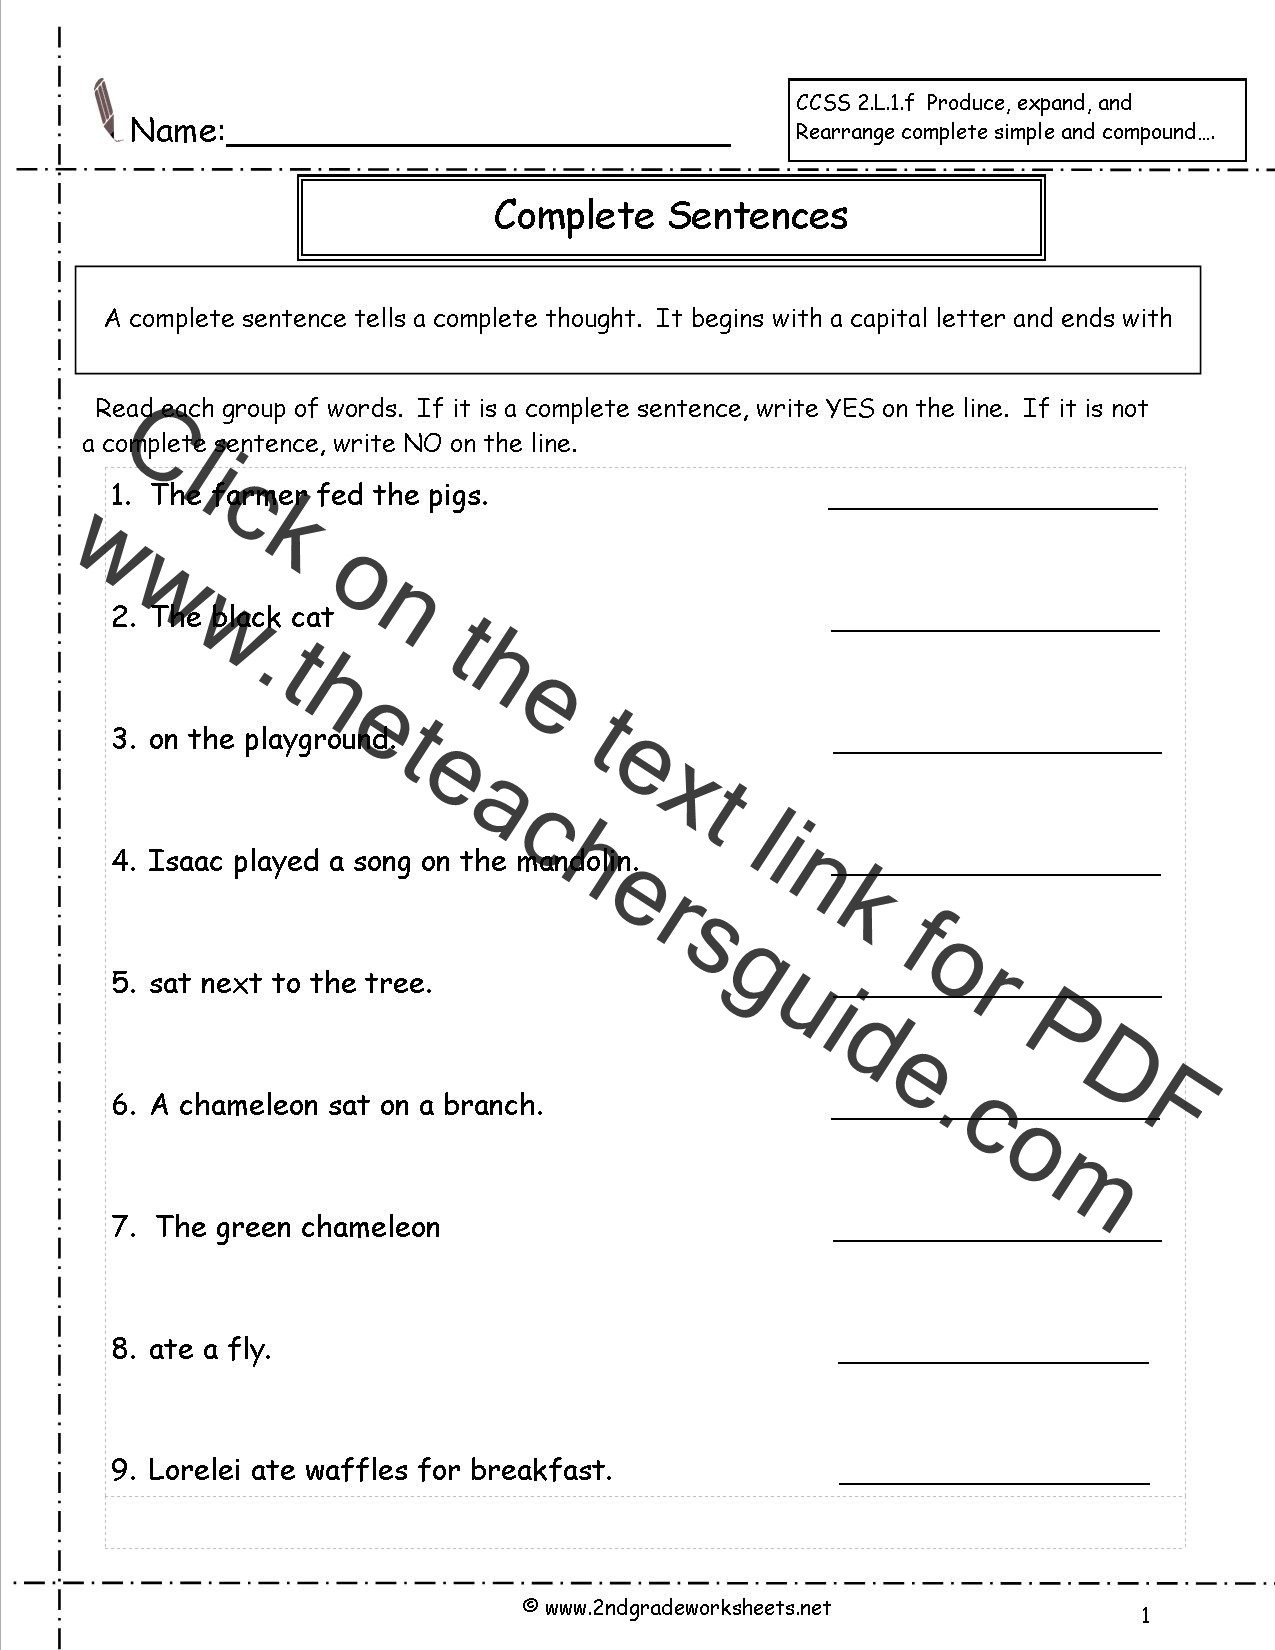 Complete Sentences Worksheets 2nd Grade Second Grade Sentences Worksheets Ccss 2 L 1 F Worksheets